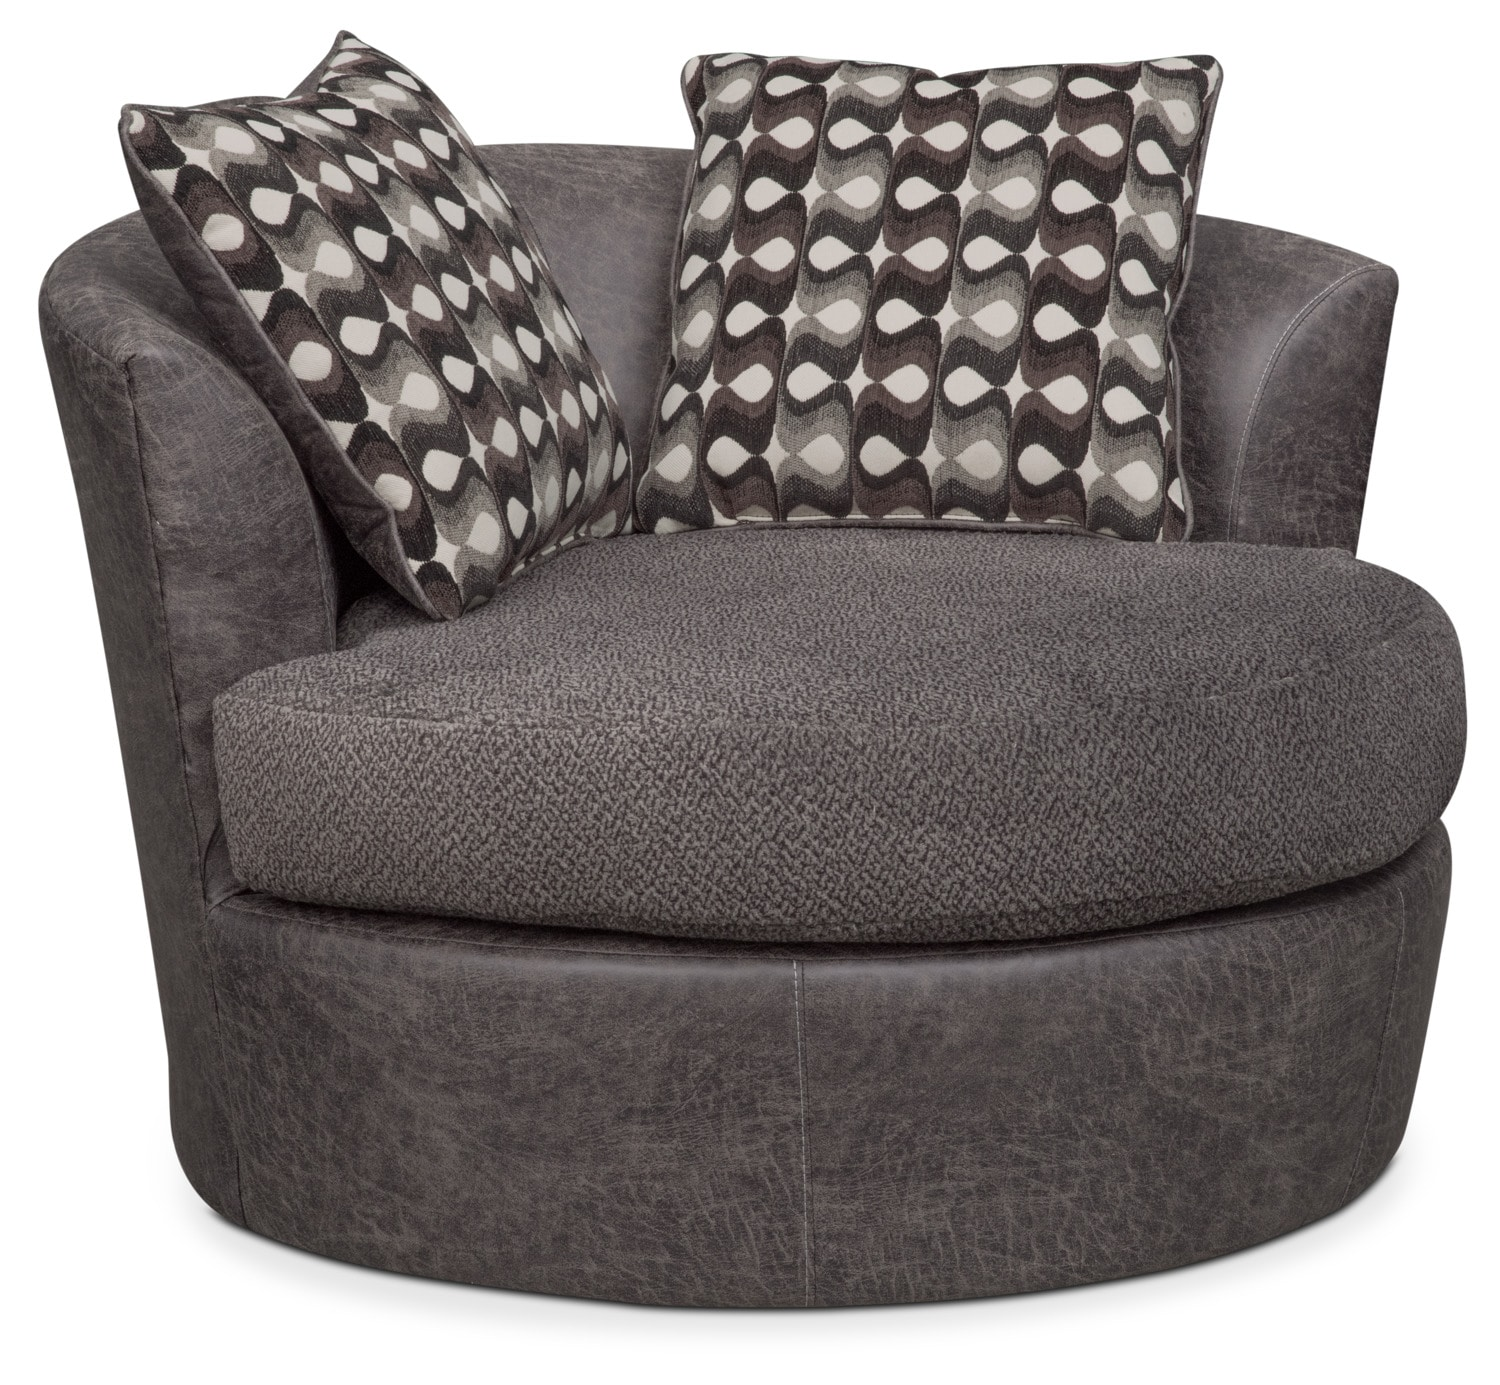 Brando Swivel Chair   Smoke